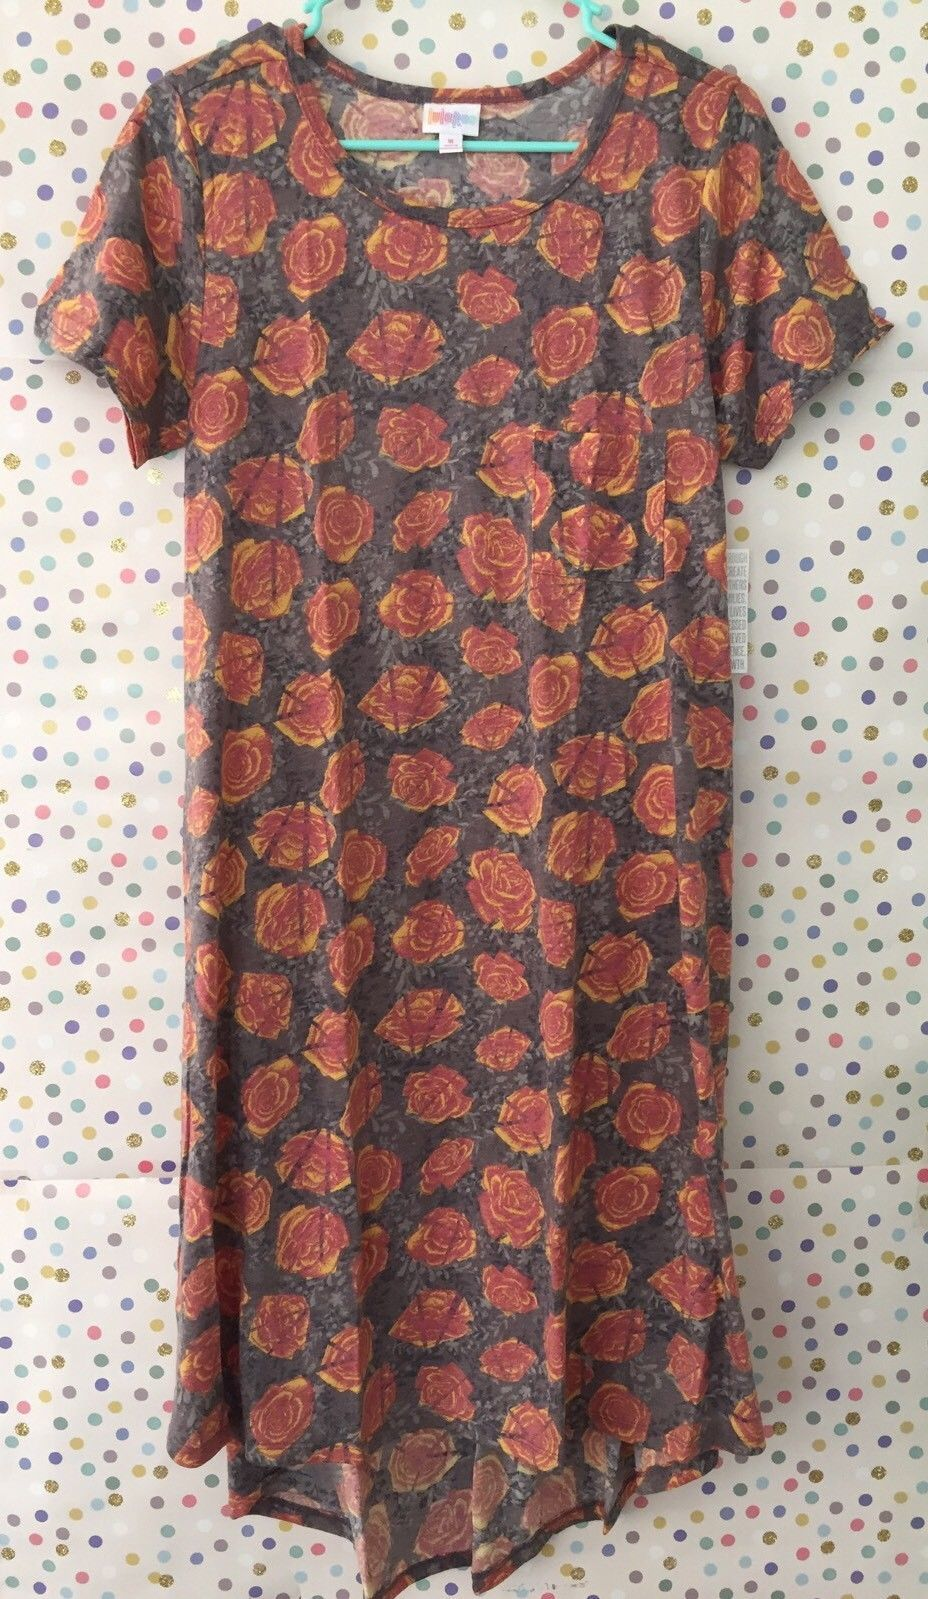 $  42.80 (30 Bids)End Date: Aug-31 18:00Bid now     Add to watch listBuy this on eBay (Category:Women's Clothing)...